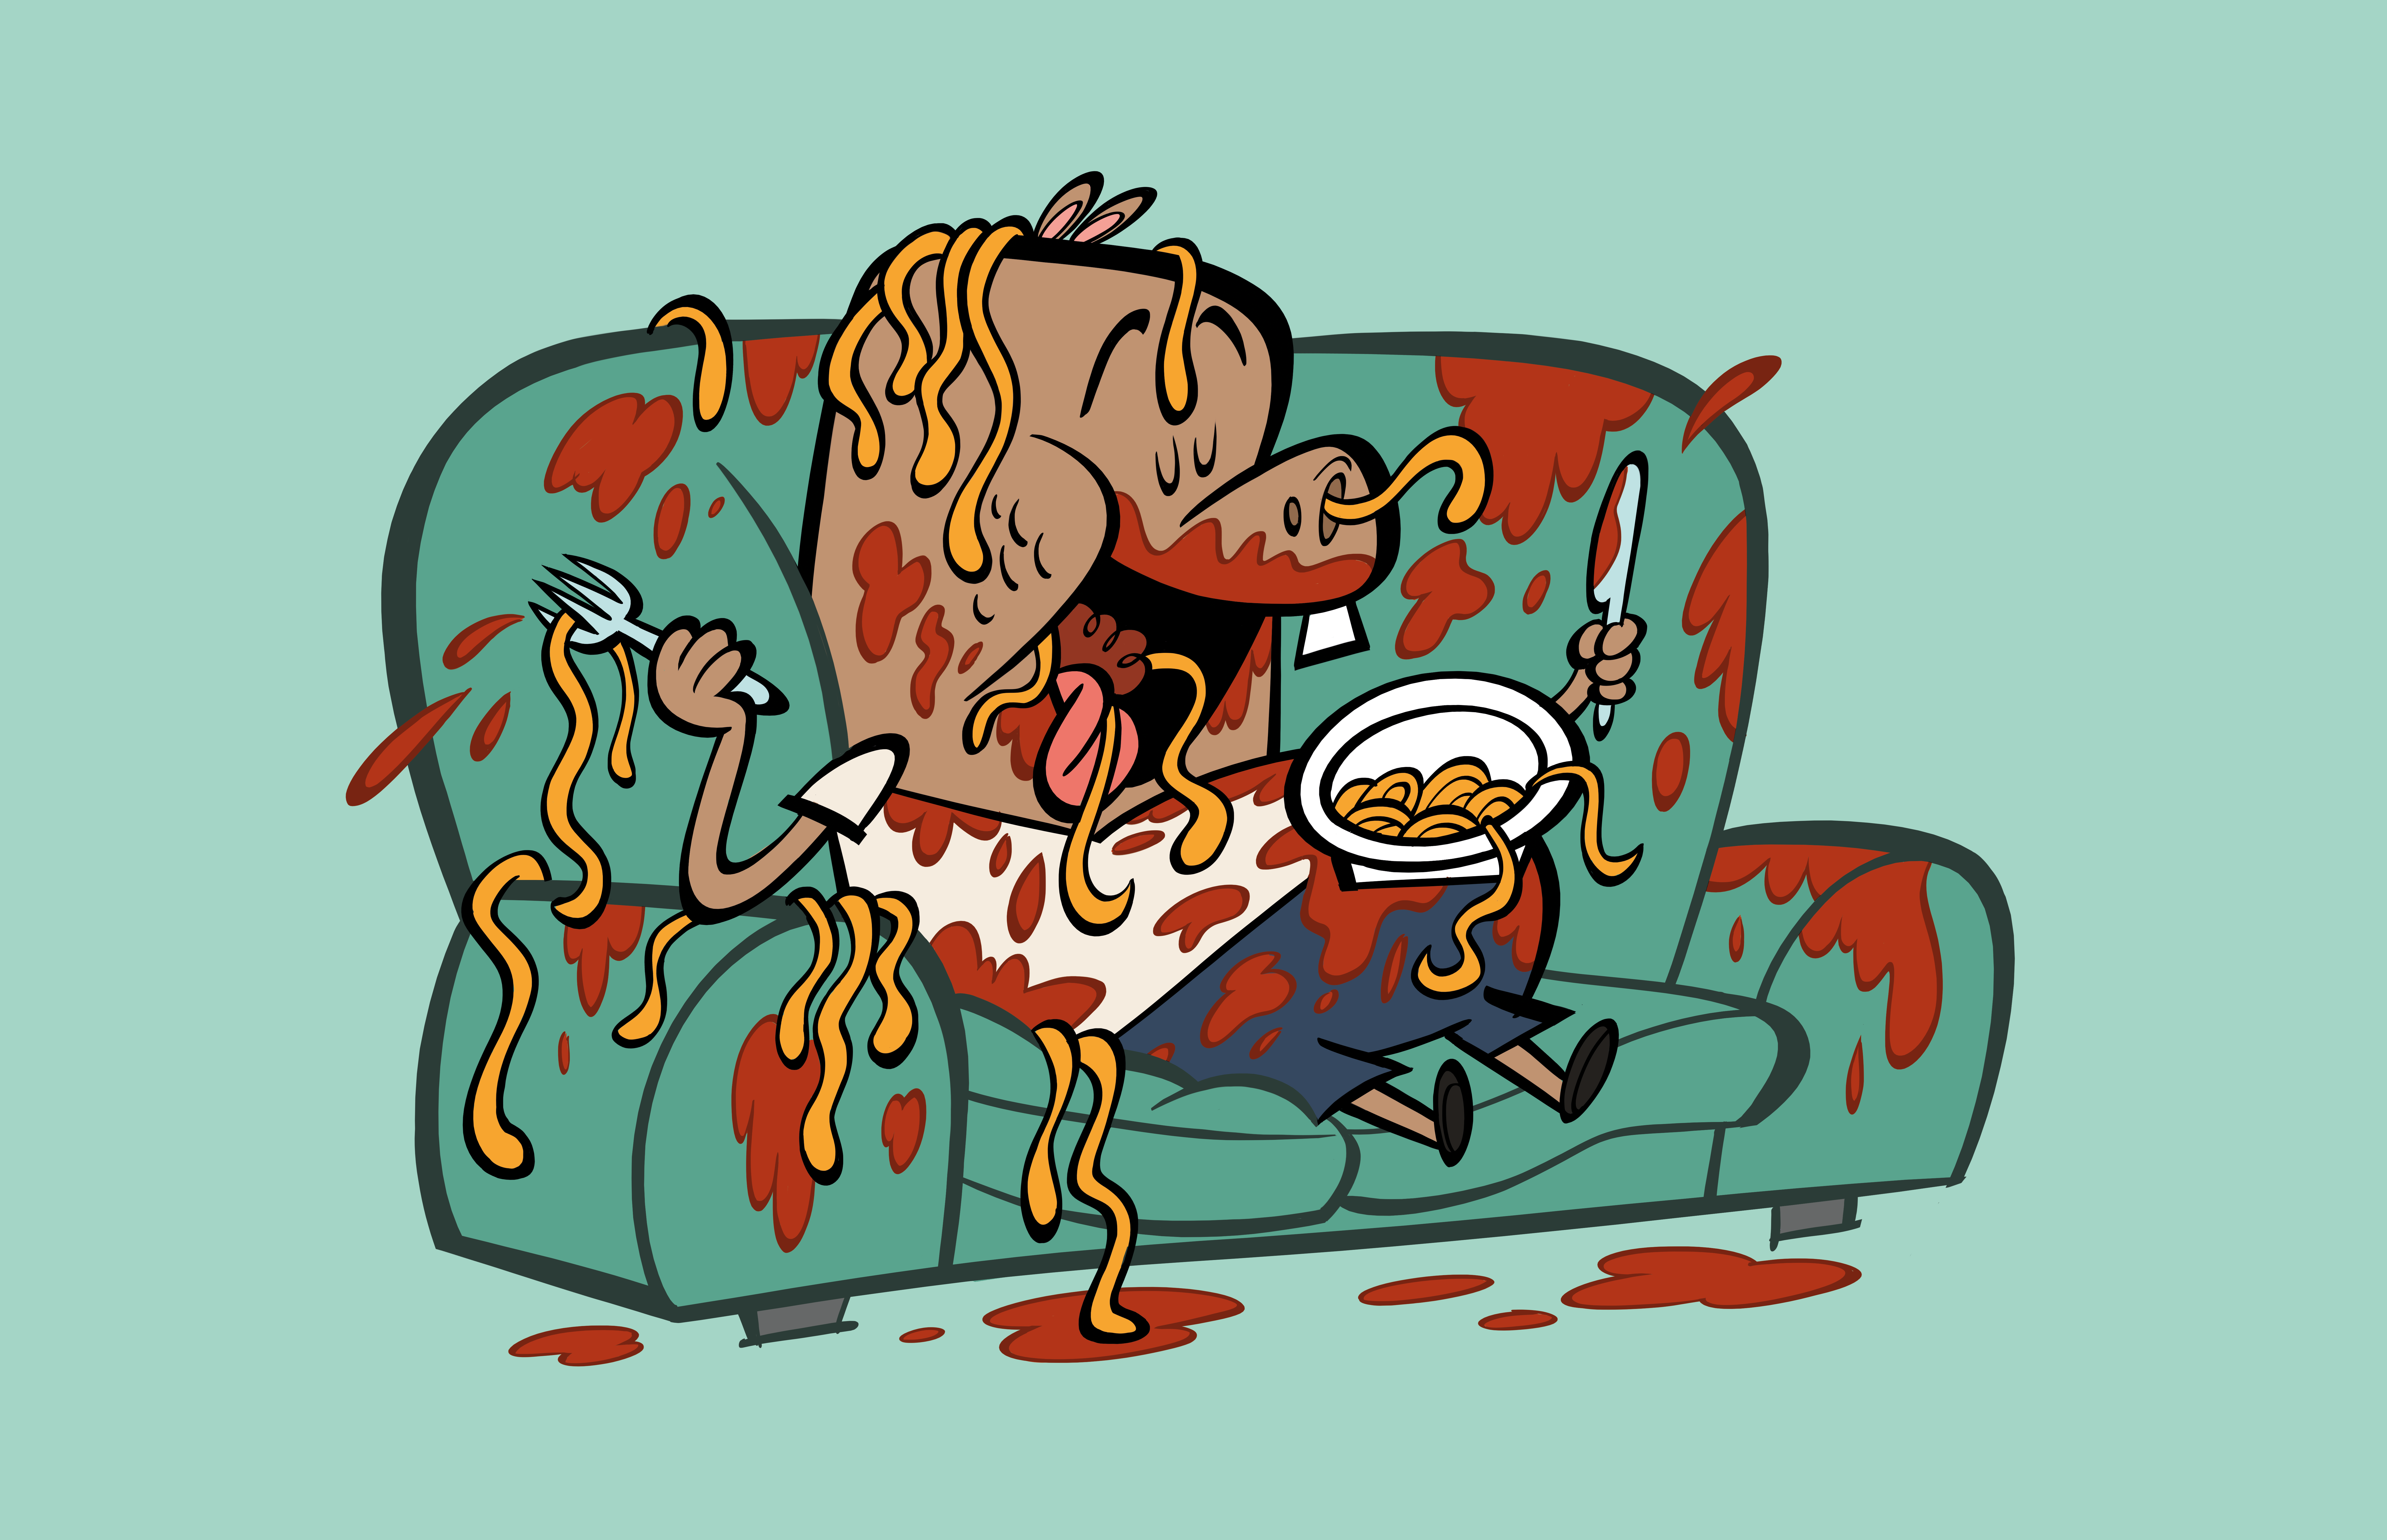 illustrated character eating messily